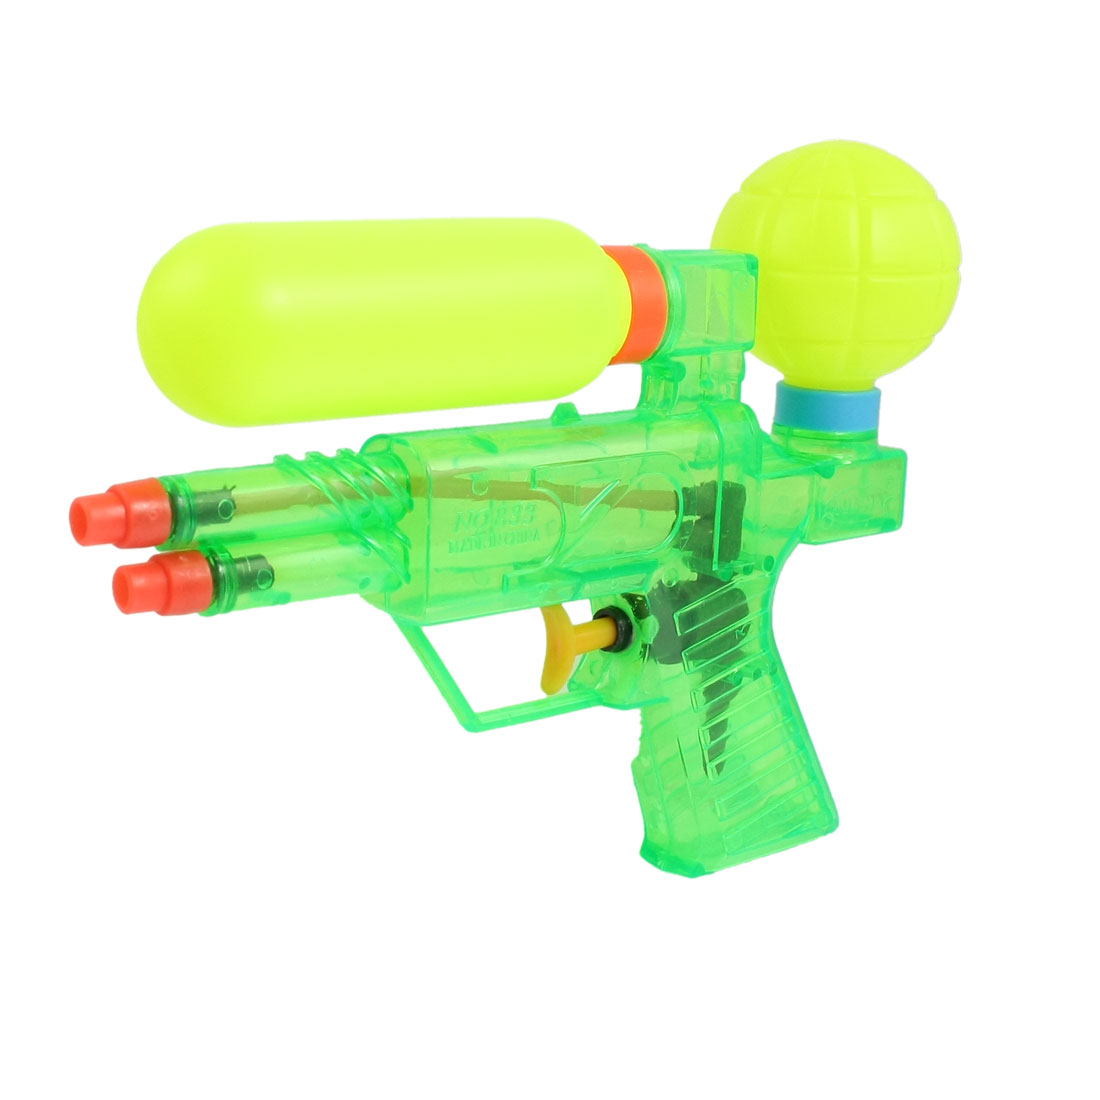 Green Yellow Red Plastic Toy Water Squirt Gun for Children